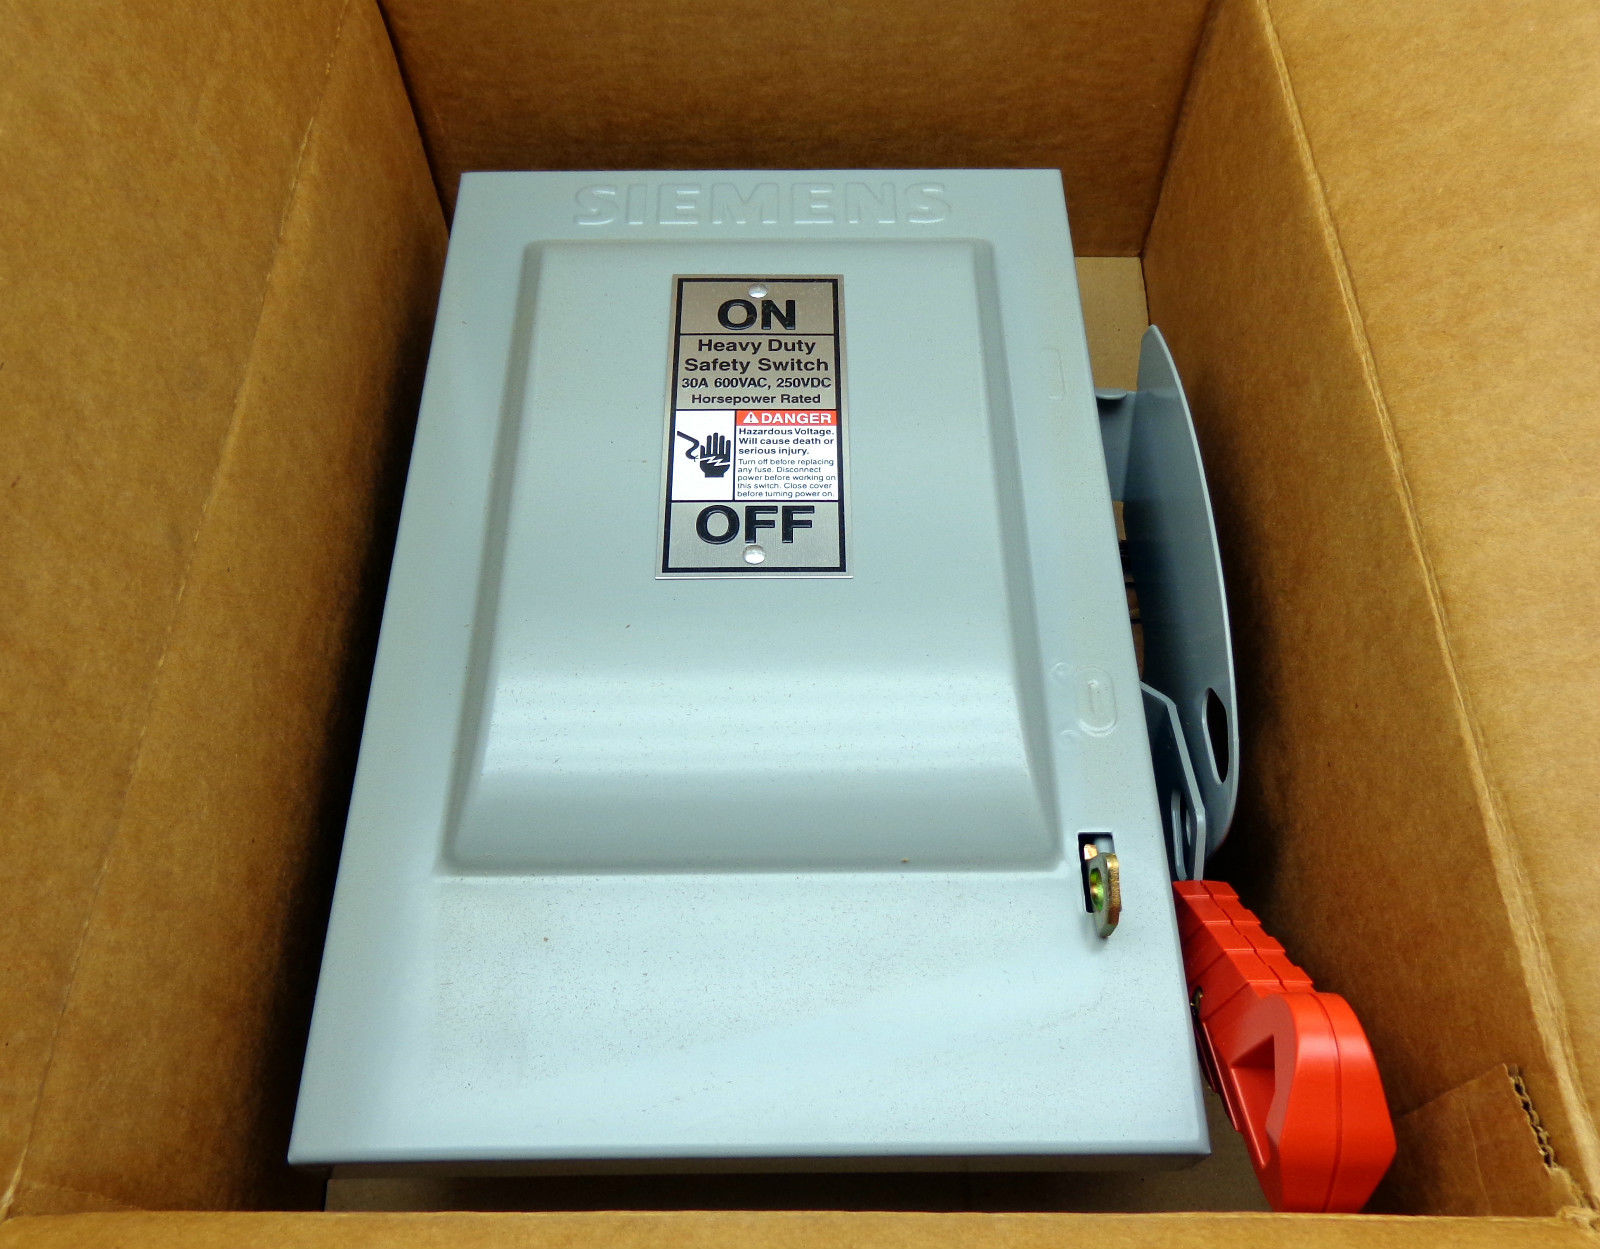 Busway Tap Box Cb100 30 2 250 4 Dis With Square D 30amp Breaker Fuse Amp Siemens Hf361 600volt Heavy Duty Safety Switch